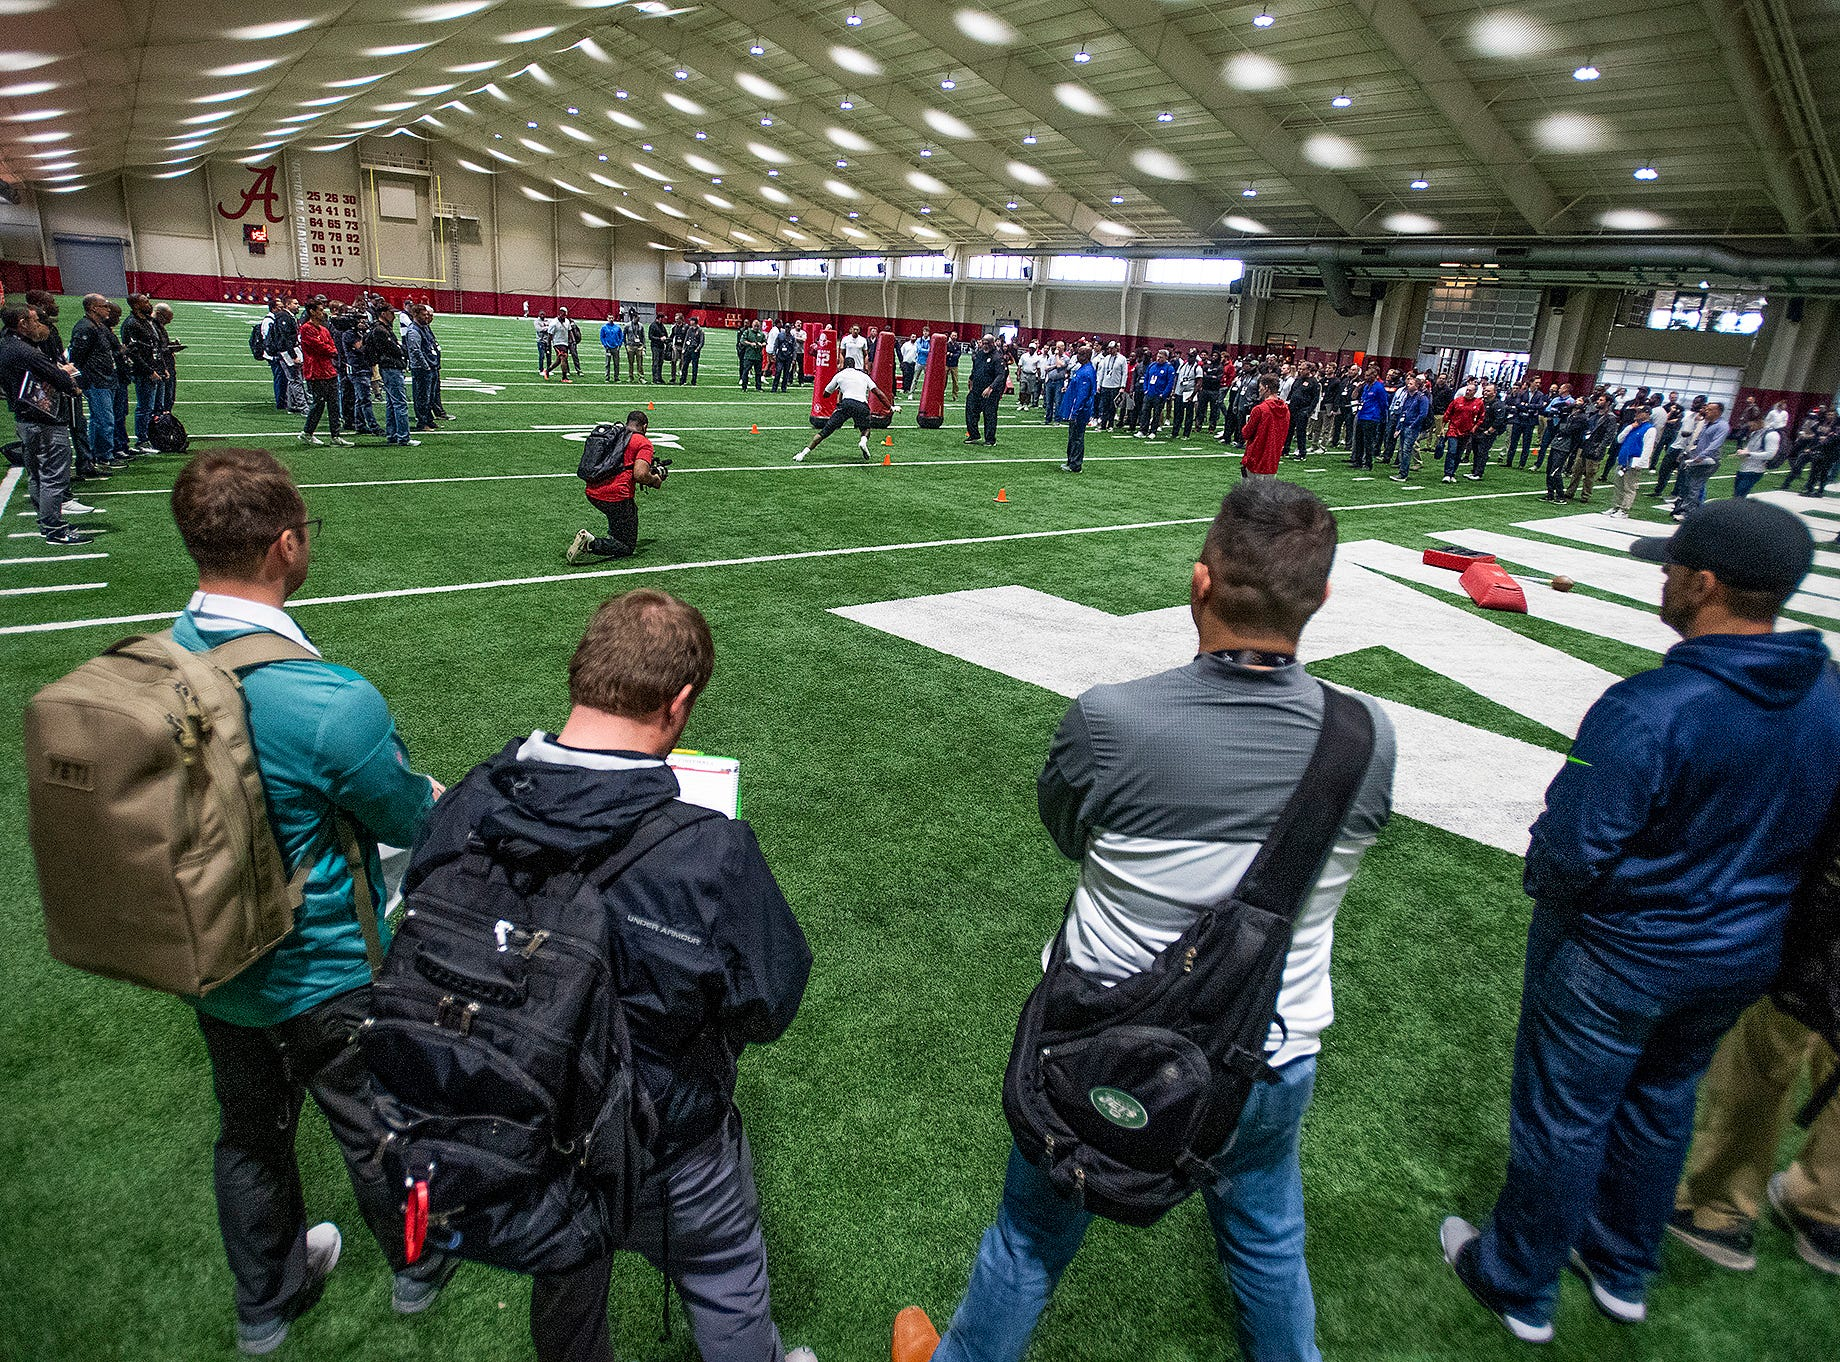 NFL scouts watch Alabama players run drills during Pro Day on the University of Alabama campus in Tuscaloosa, Ala., on Tuesday March 19, 2019.